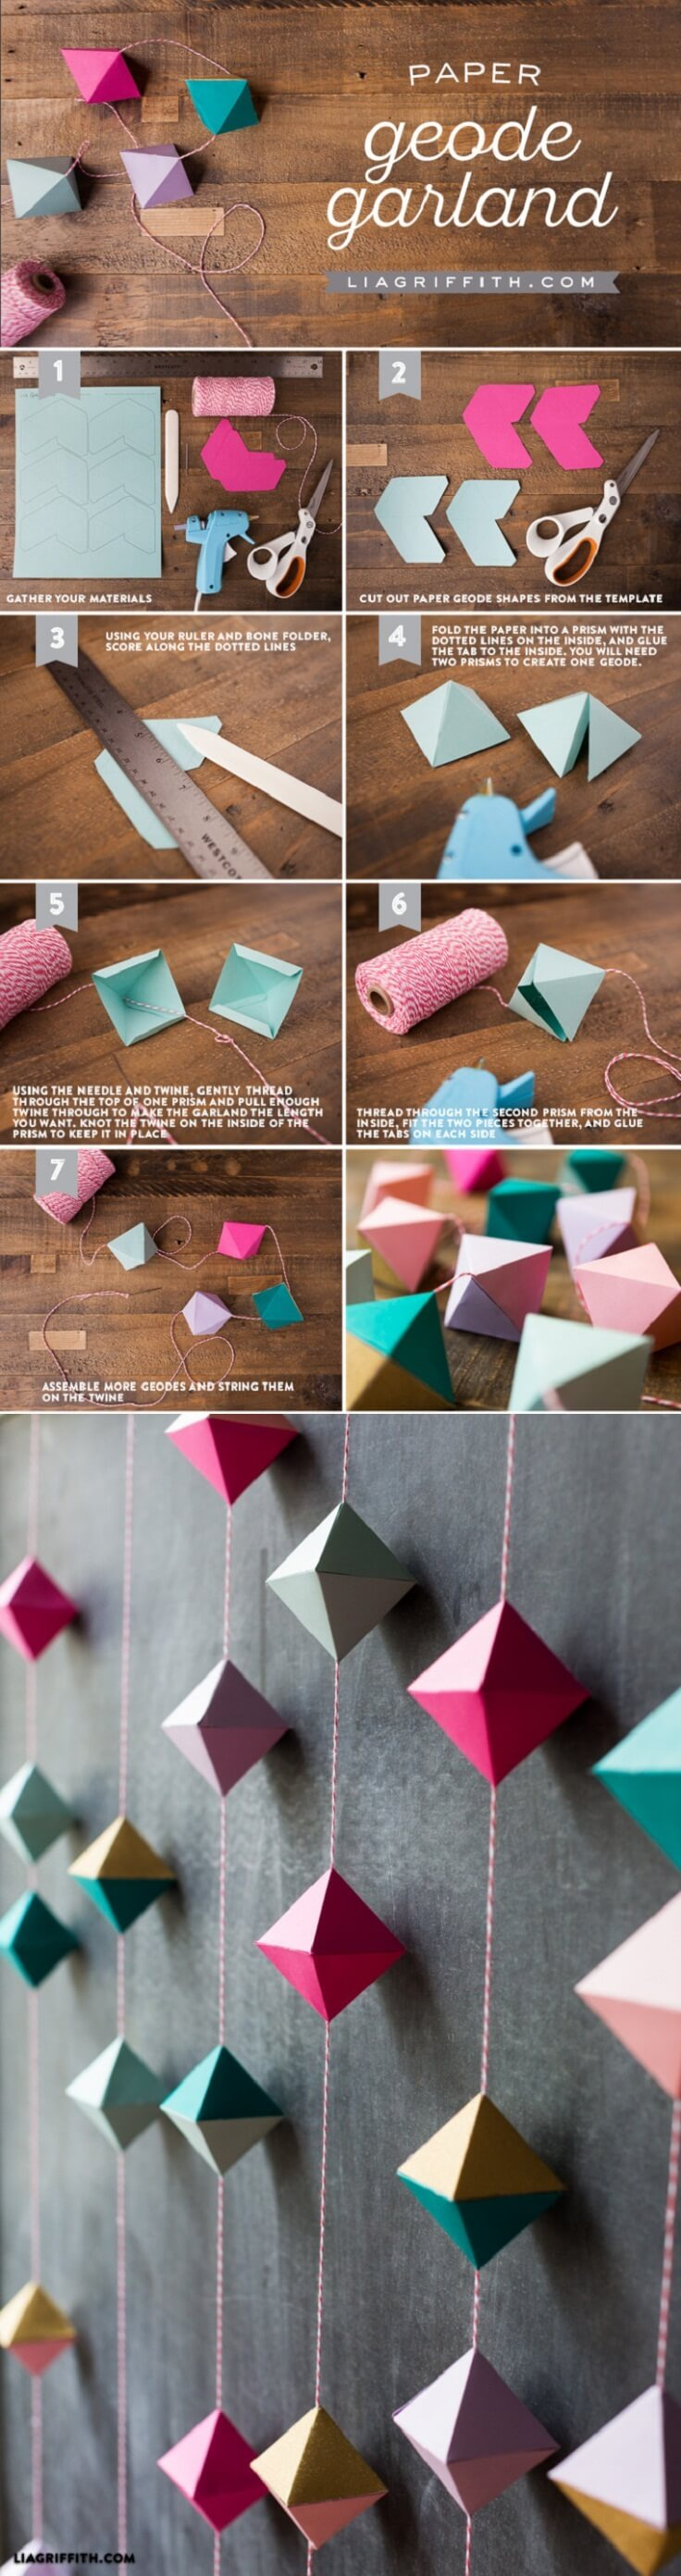 11 Best Paper Decor Crafts (Ideas and Designs) for 11